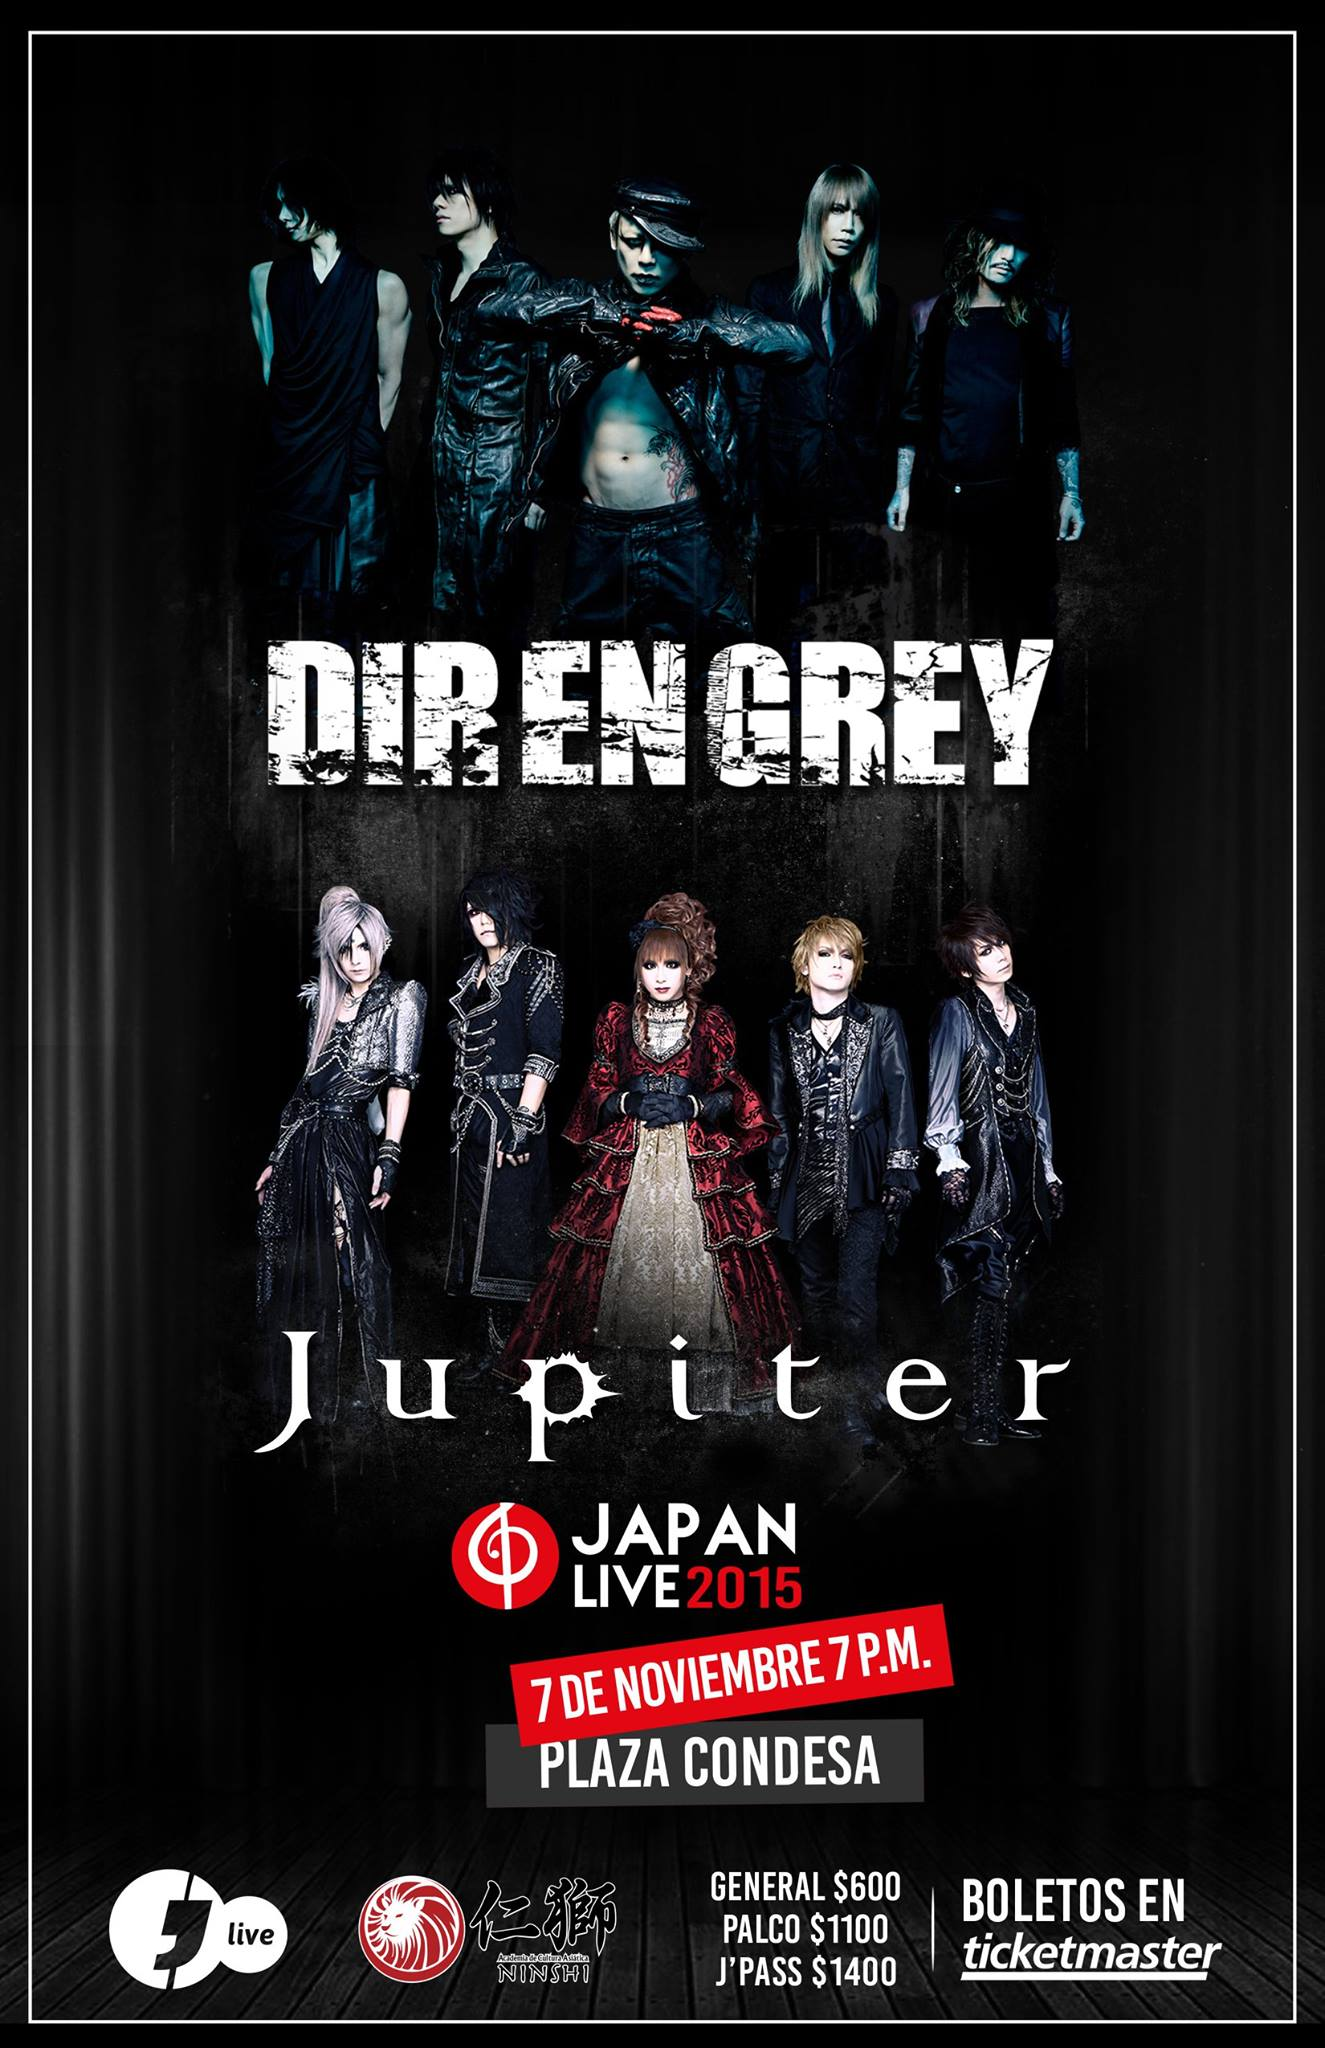 Japan Live 2015 : Dir en Grey y Jupiter